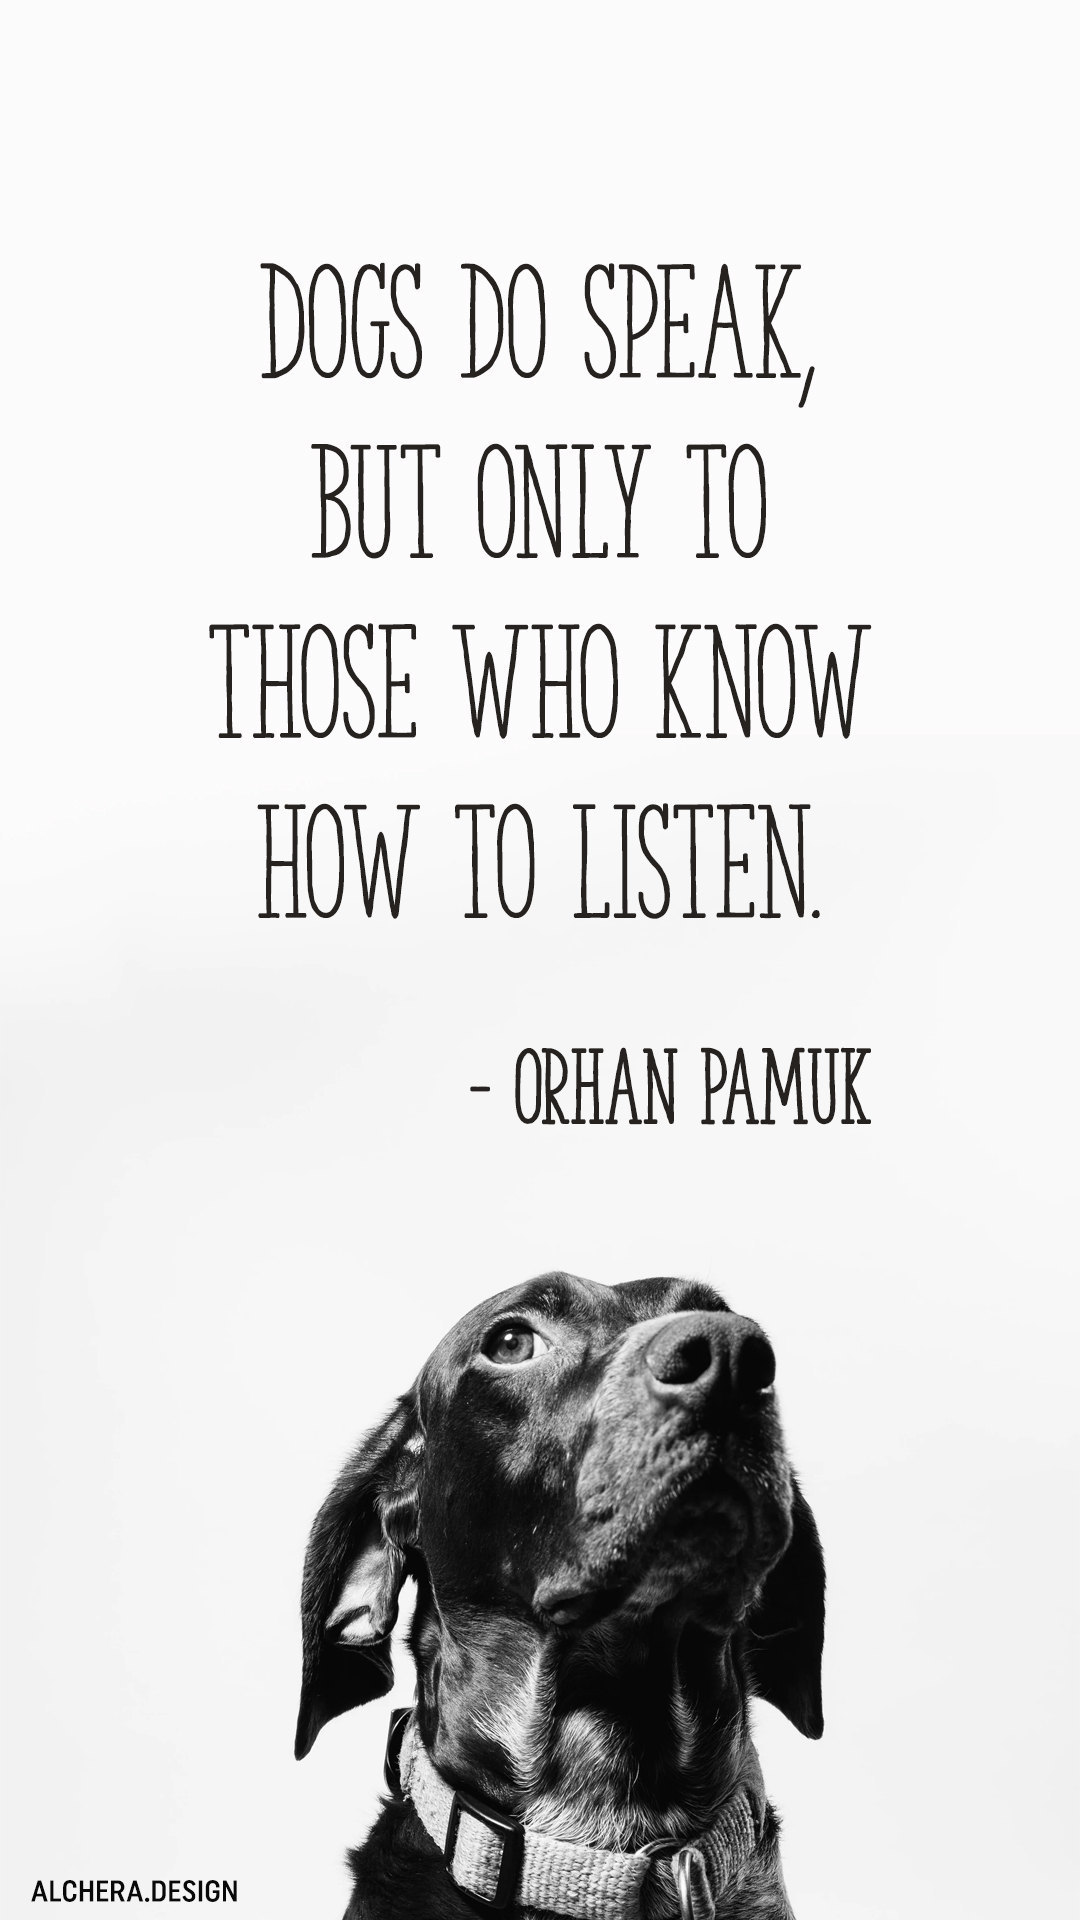 Dogs do speak, but only to those who know how to listen.  Quote by Orhan Pamuk